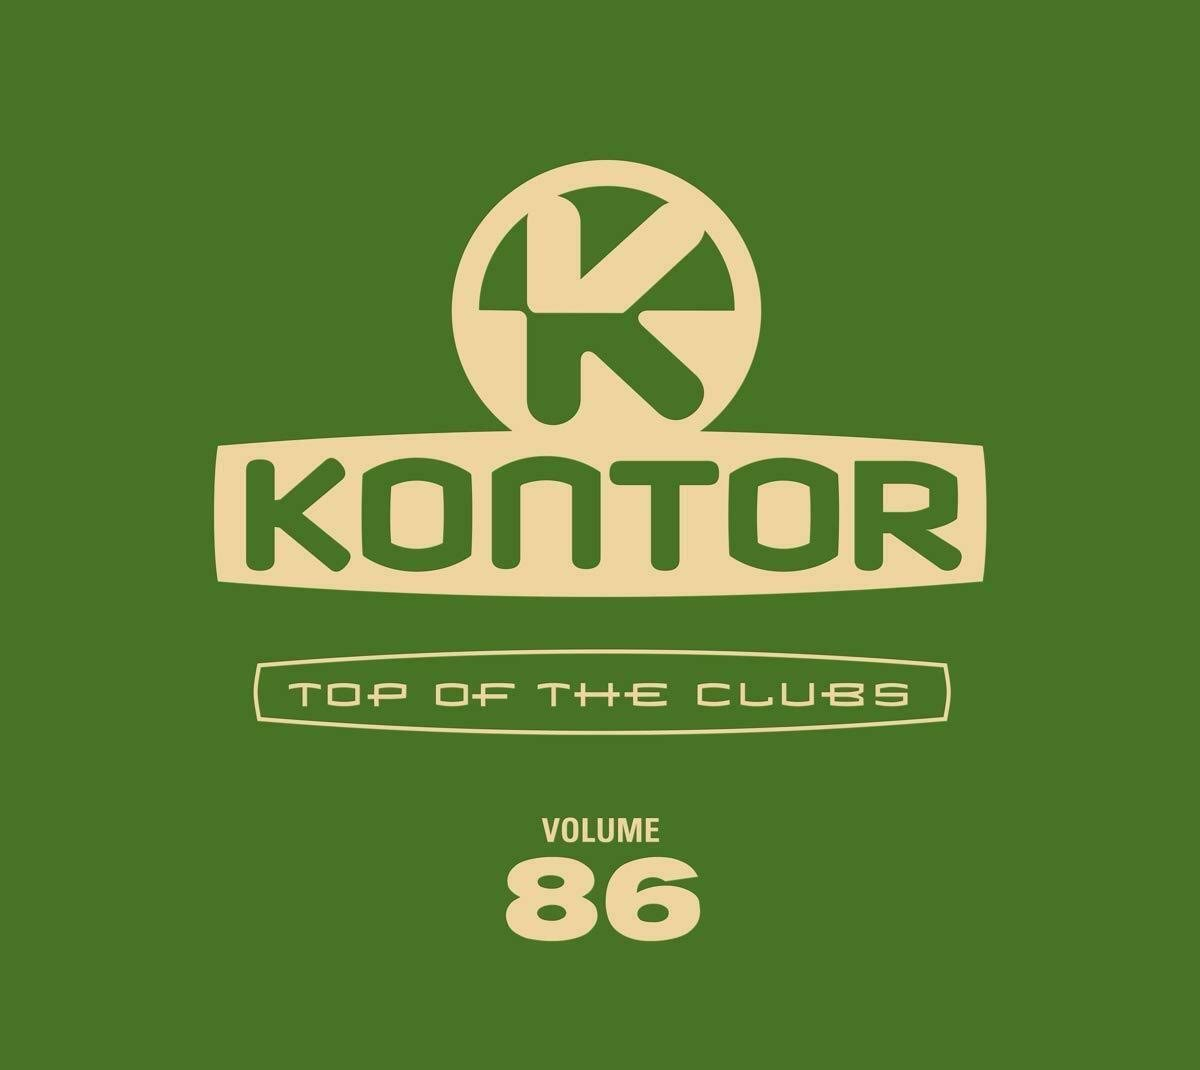 Top Of The Clubs 86